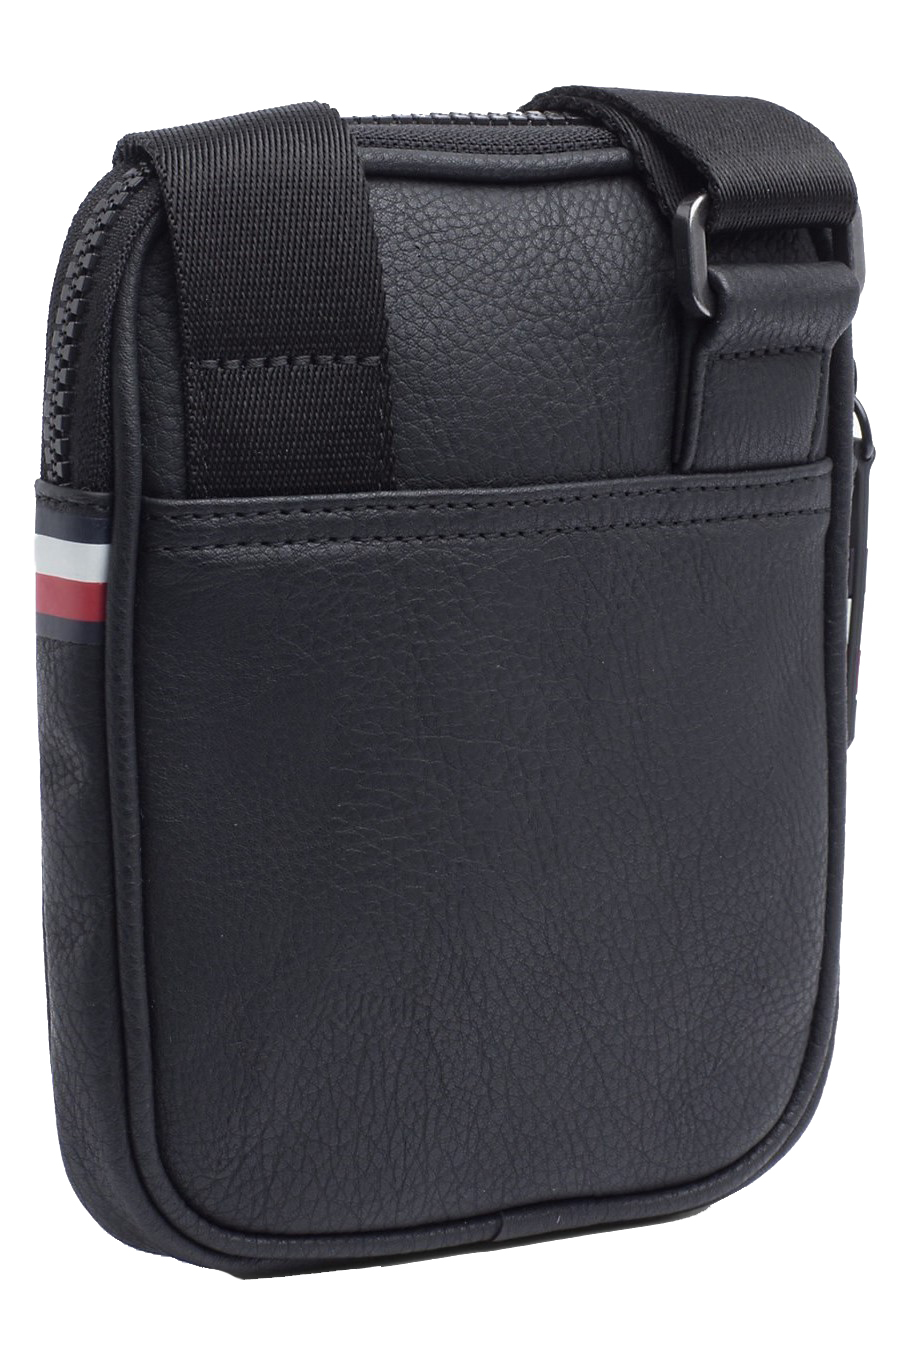 Tommy Hilfiger fekete crossbody unisex táska Essential Compact Crossover  Black 38b3822217